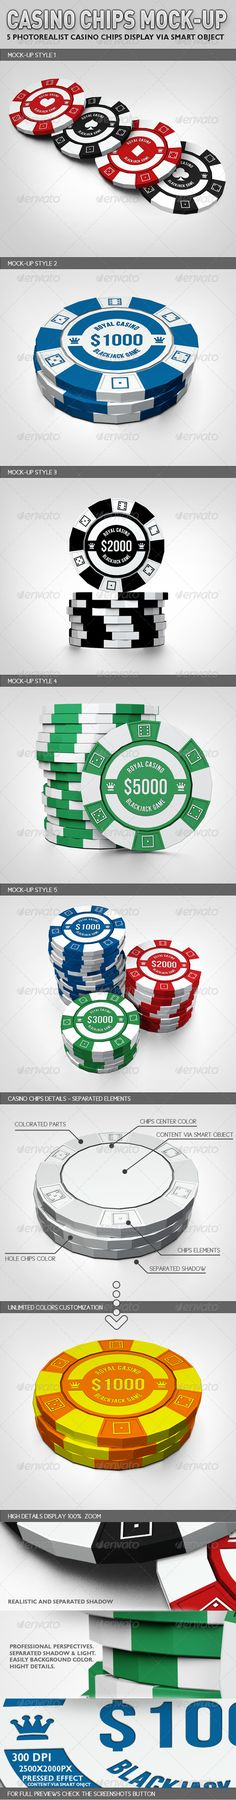 Casino Chips Mockup — Photoshop PSD #chip #gambling • Available here → https://graphicriver.net/item/casino-chips-mockup/2979079?ref=pxcr